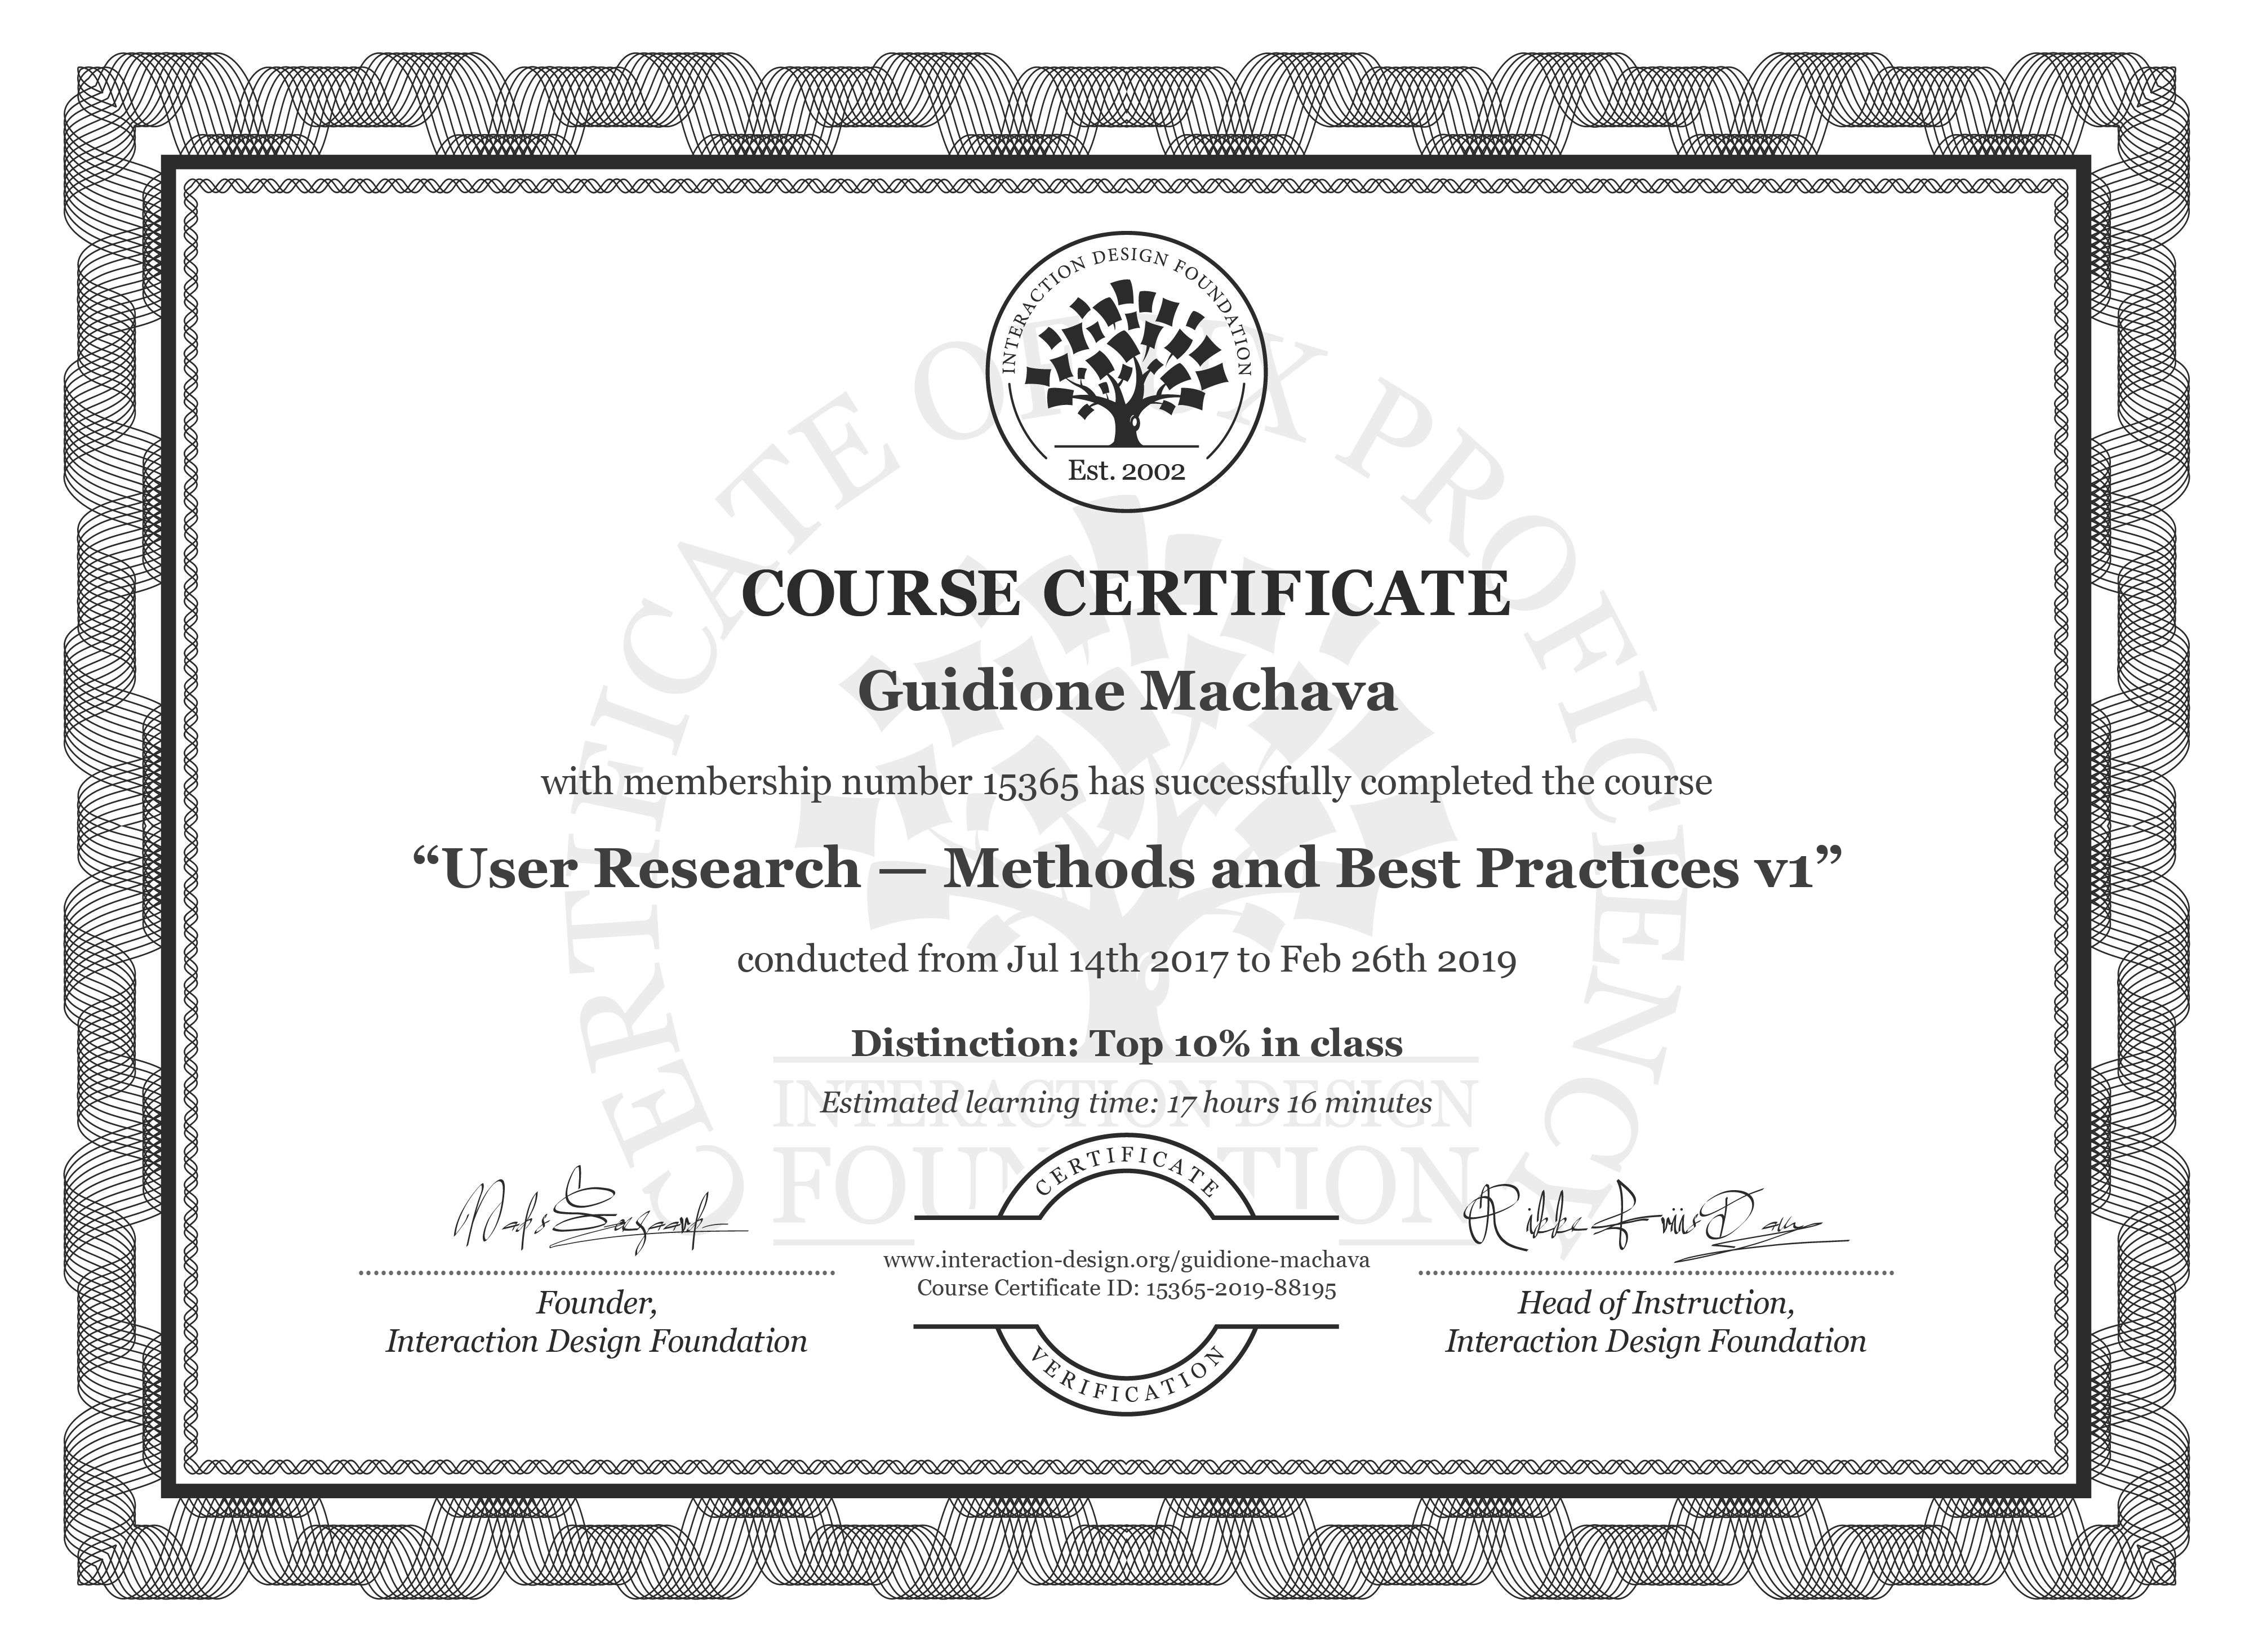 Guidione Machava's Course Certificate: User Research — Methods and Best Practices